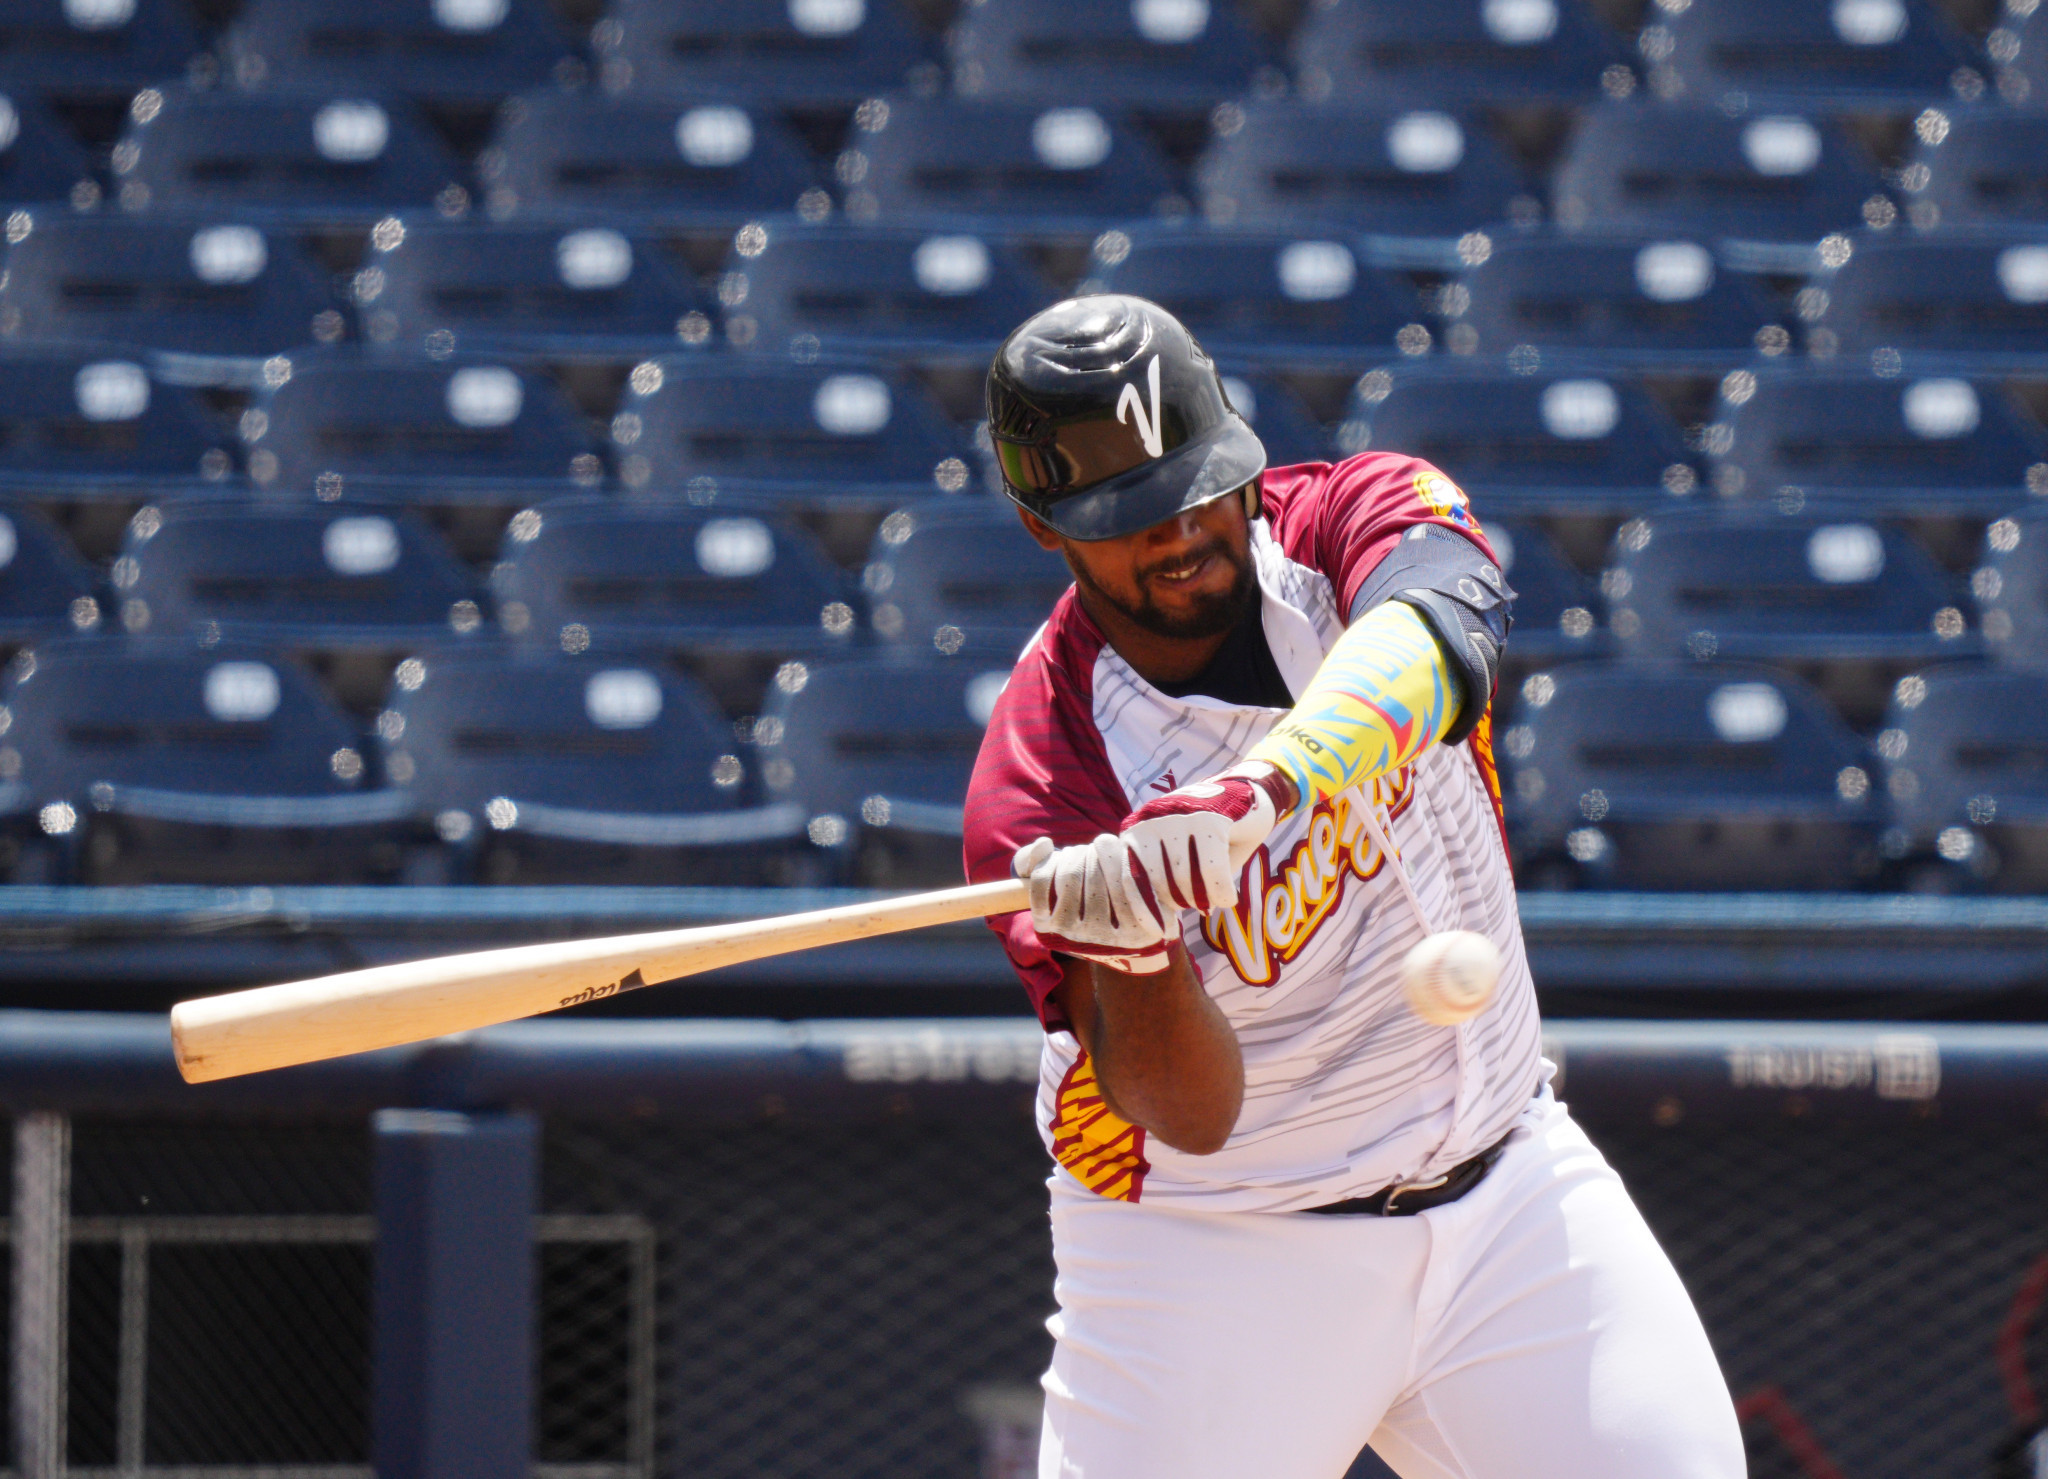 Venezuela come from behind to beat hosts in 2021 Under-23 Baseball World Cup